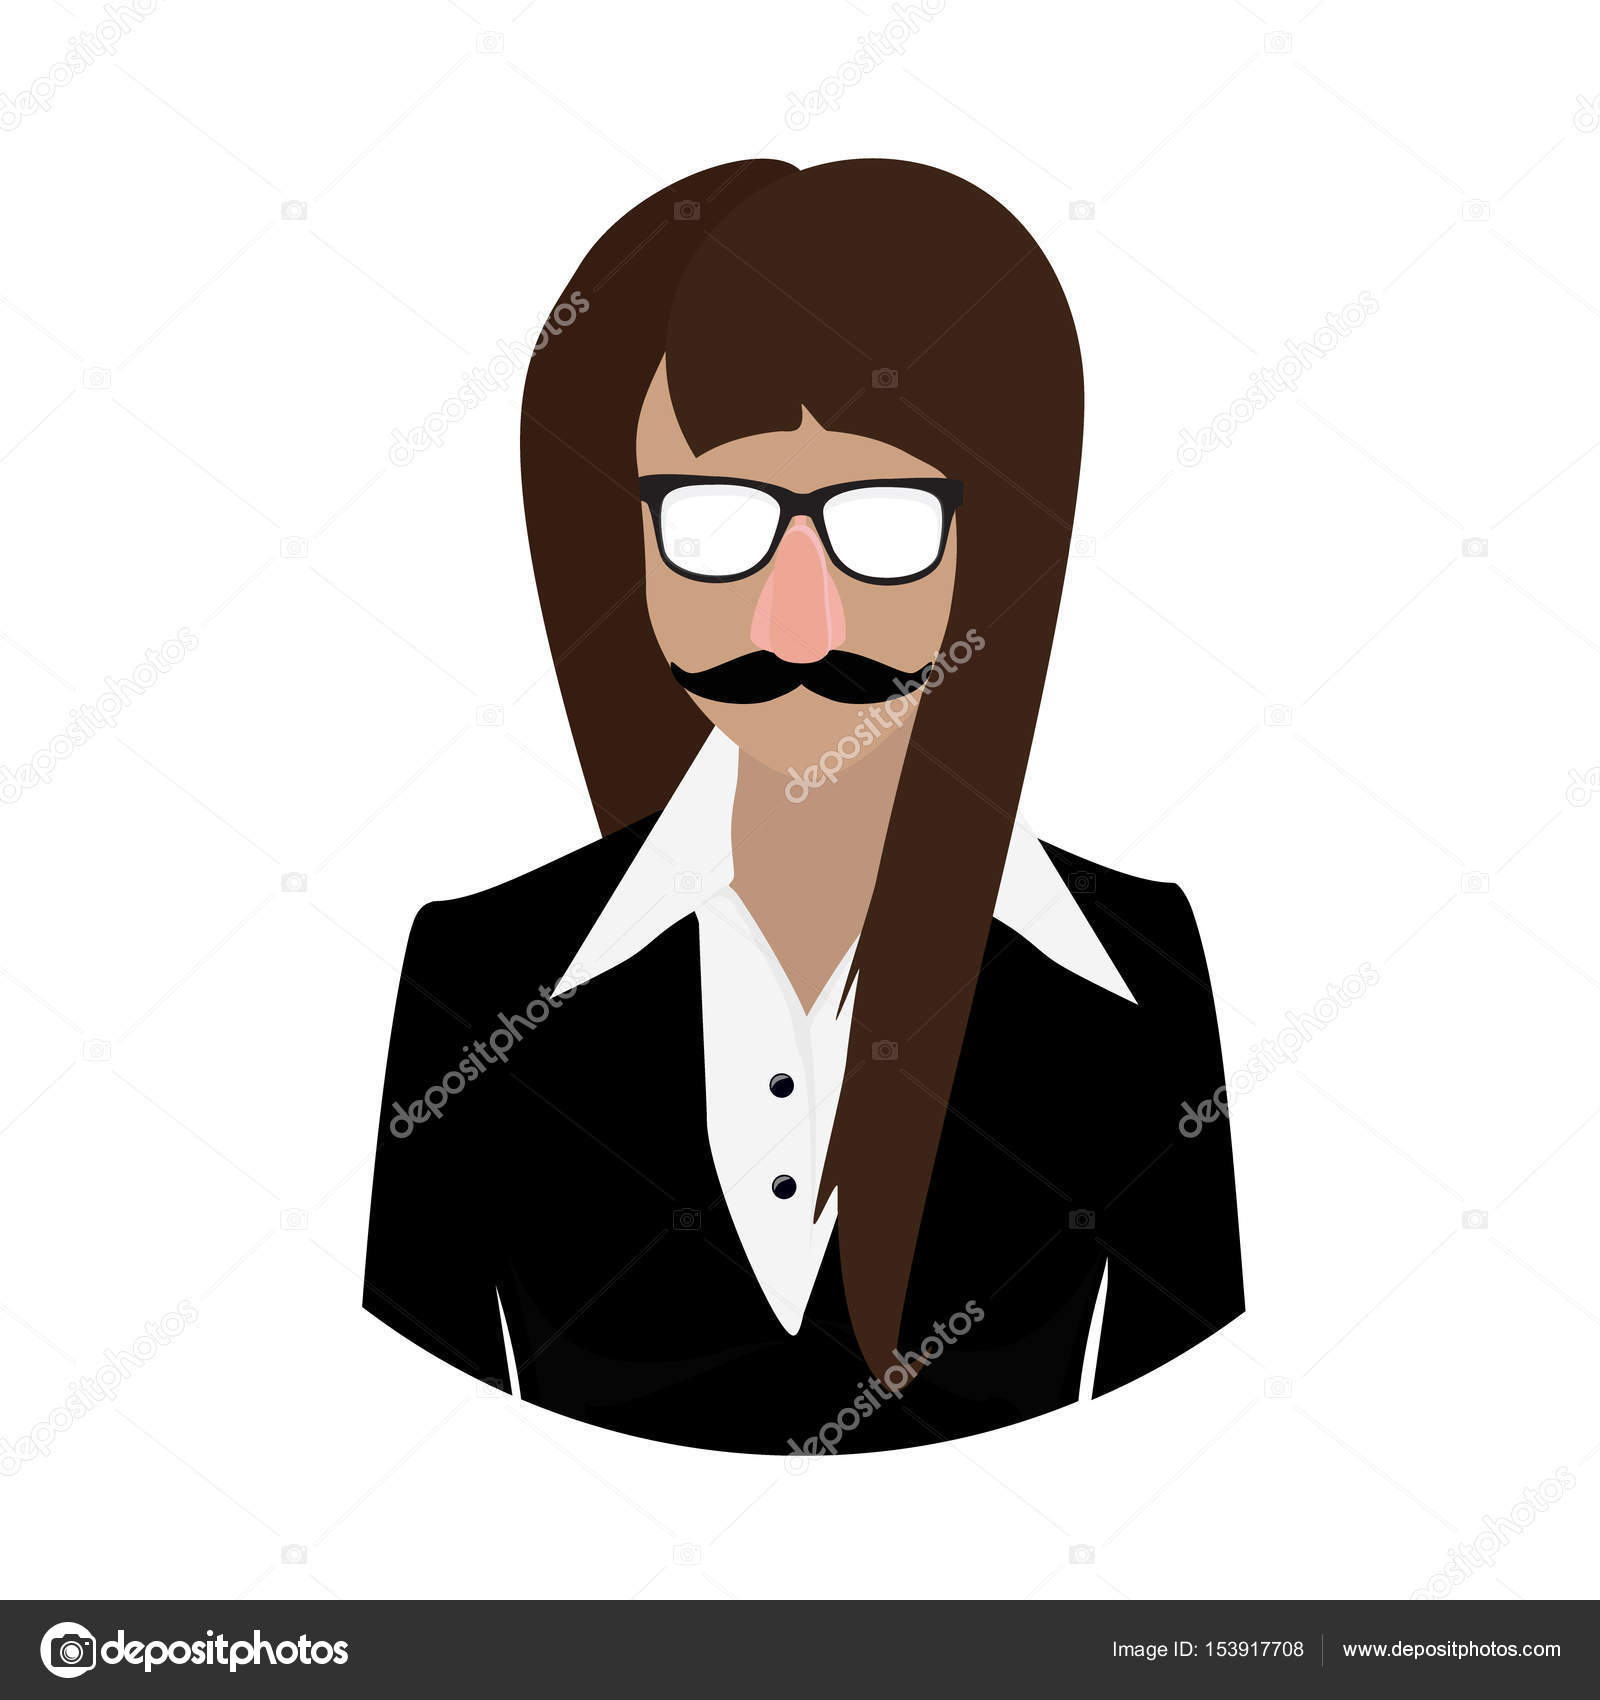 ec11c6eef601 Woman in fake nose and glasses humor mask raster illustration. Disguise  glasses